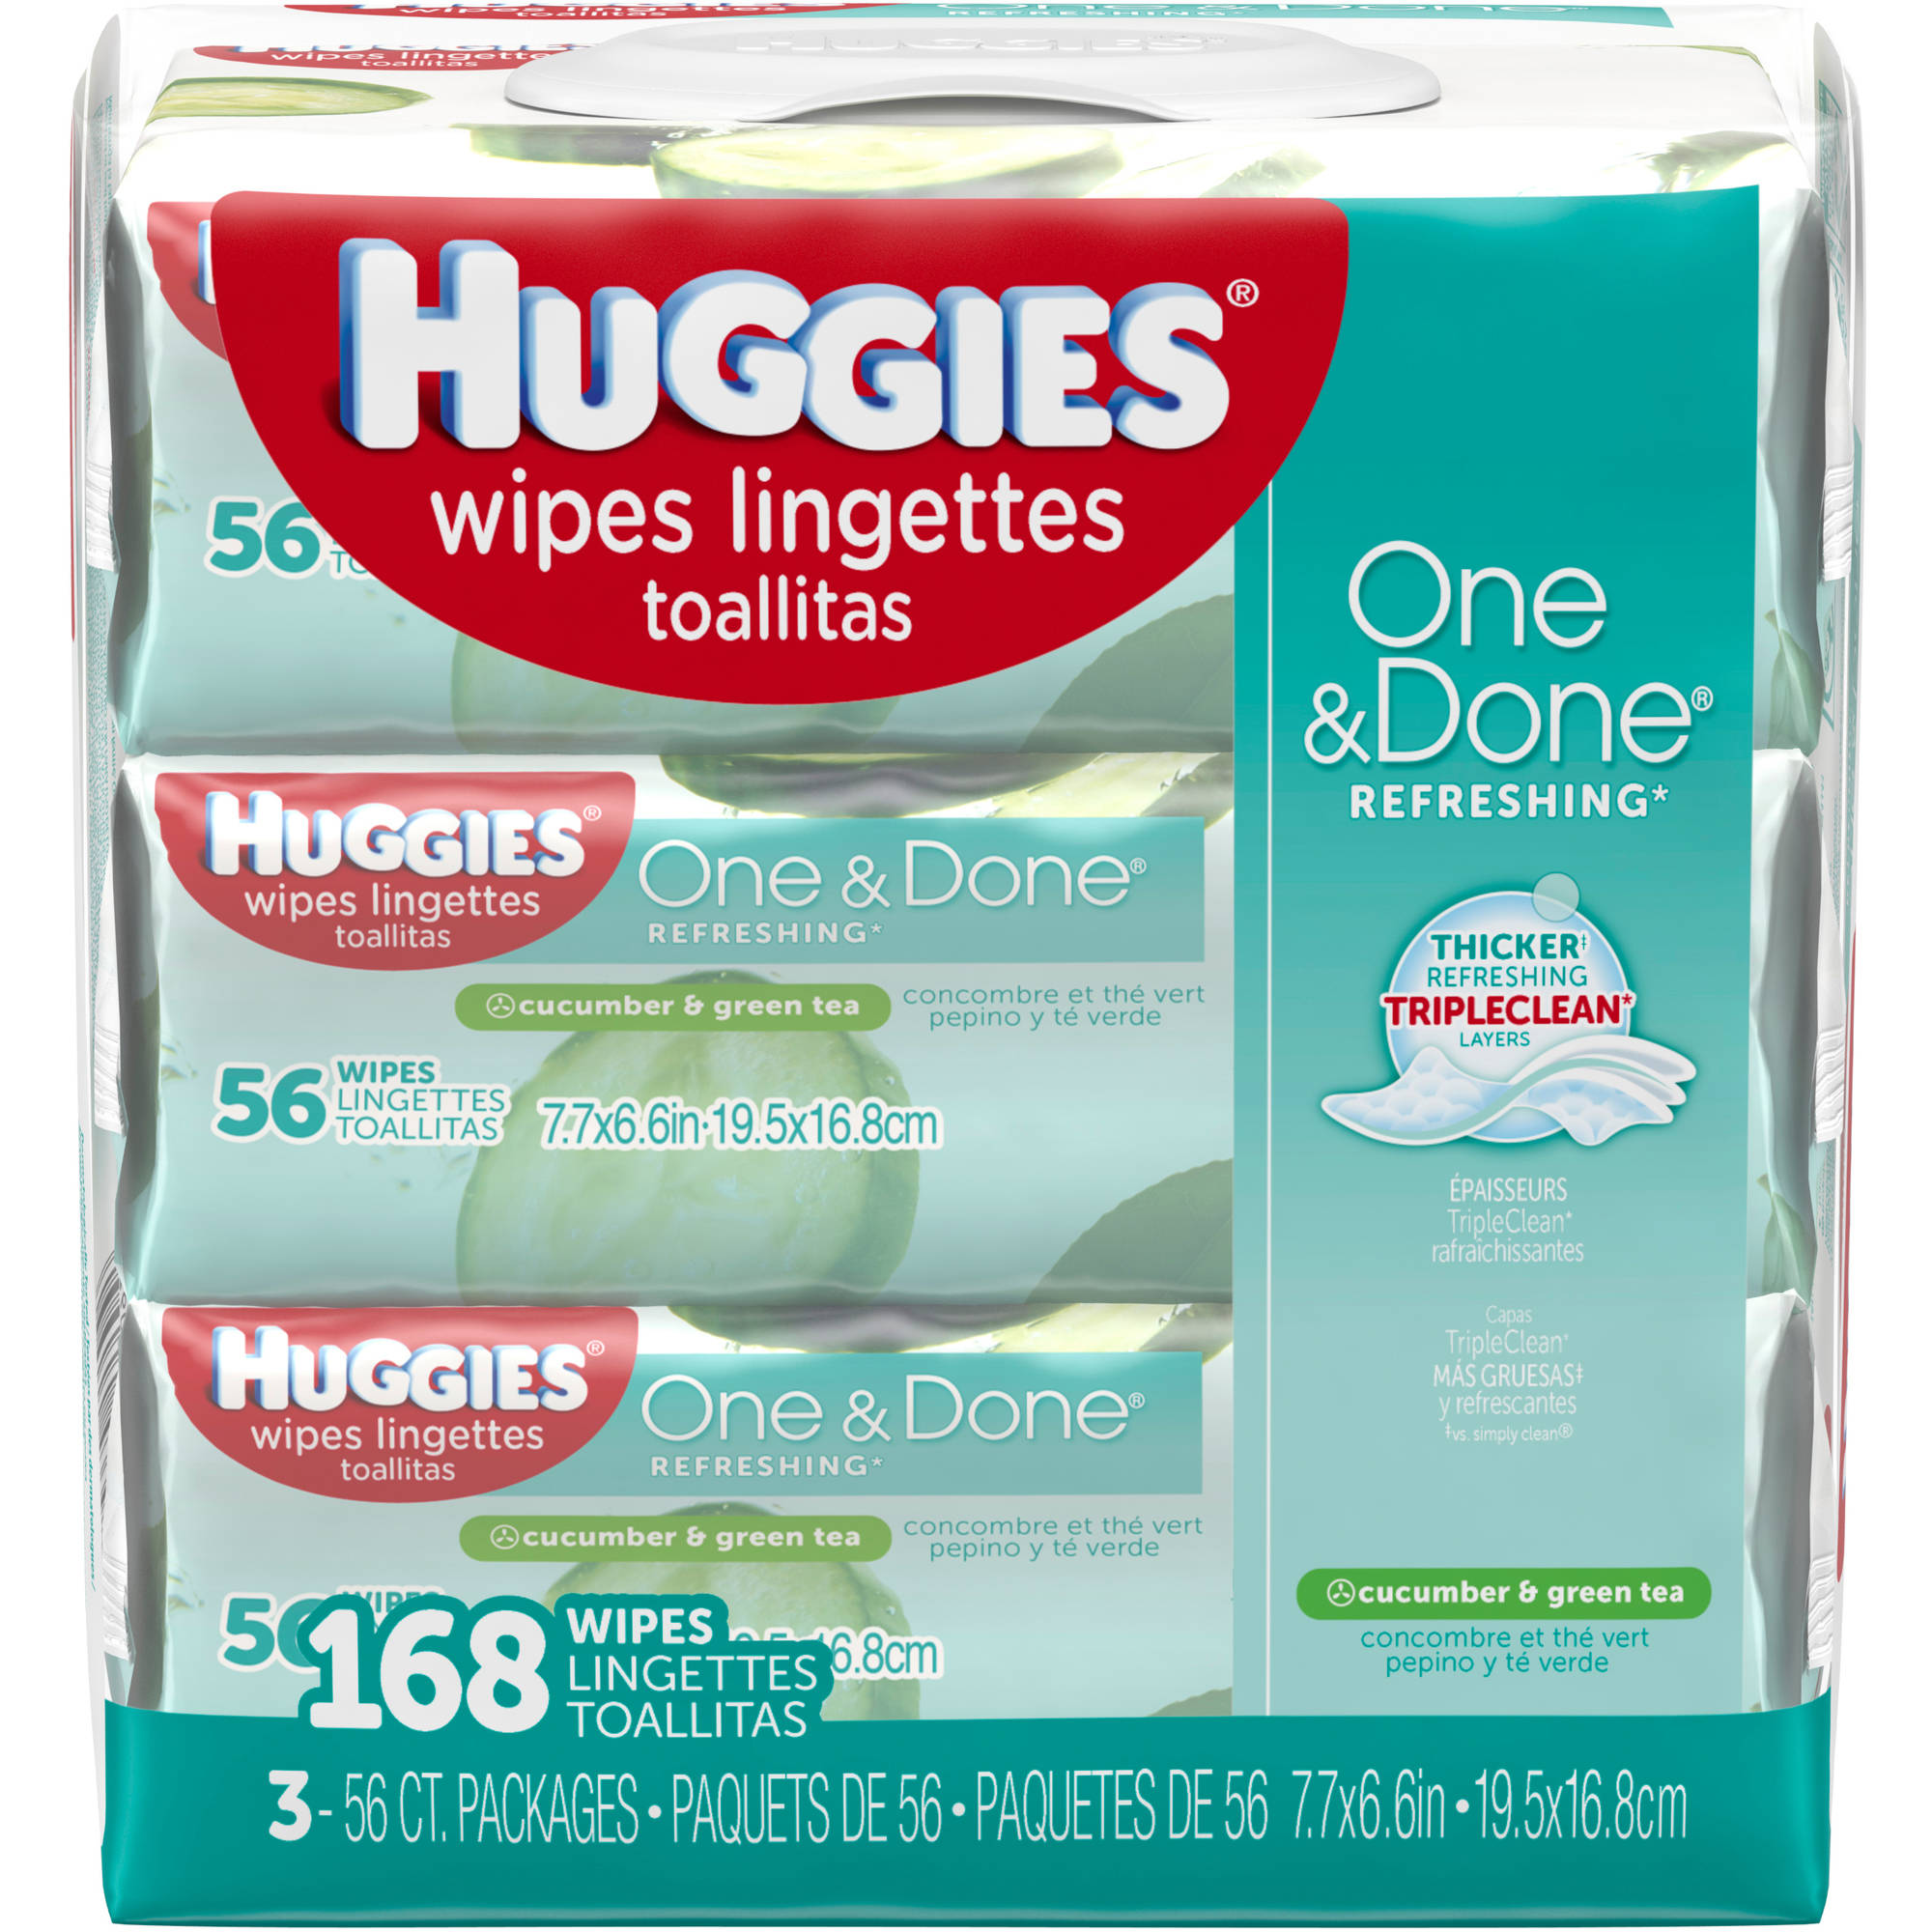 Huggies One & Done Refreshing Baby Wipes, Scented, Hypoallergenic, 56 sheets, (Pack of 3)